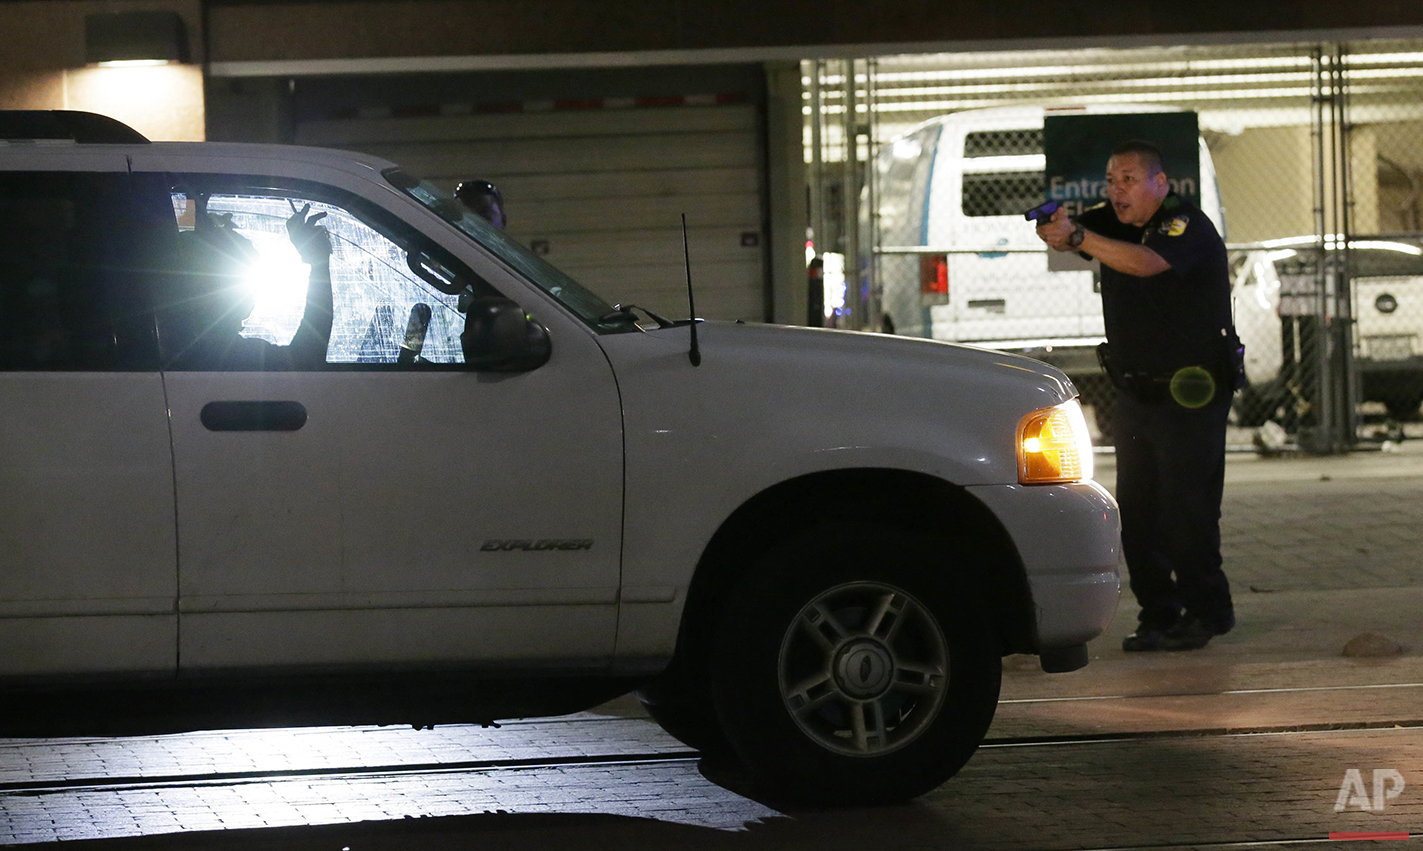 A police officer stops a driver in downtown Dallas on Thursday, July 7, 2016 after police officers were shot and killed during a protest over fatal police shootings of black men in other states. (AP Photo/LM Otero)